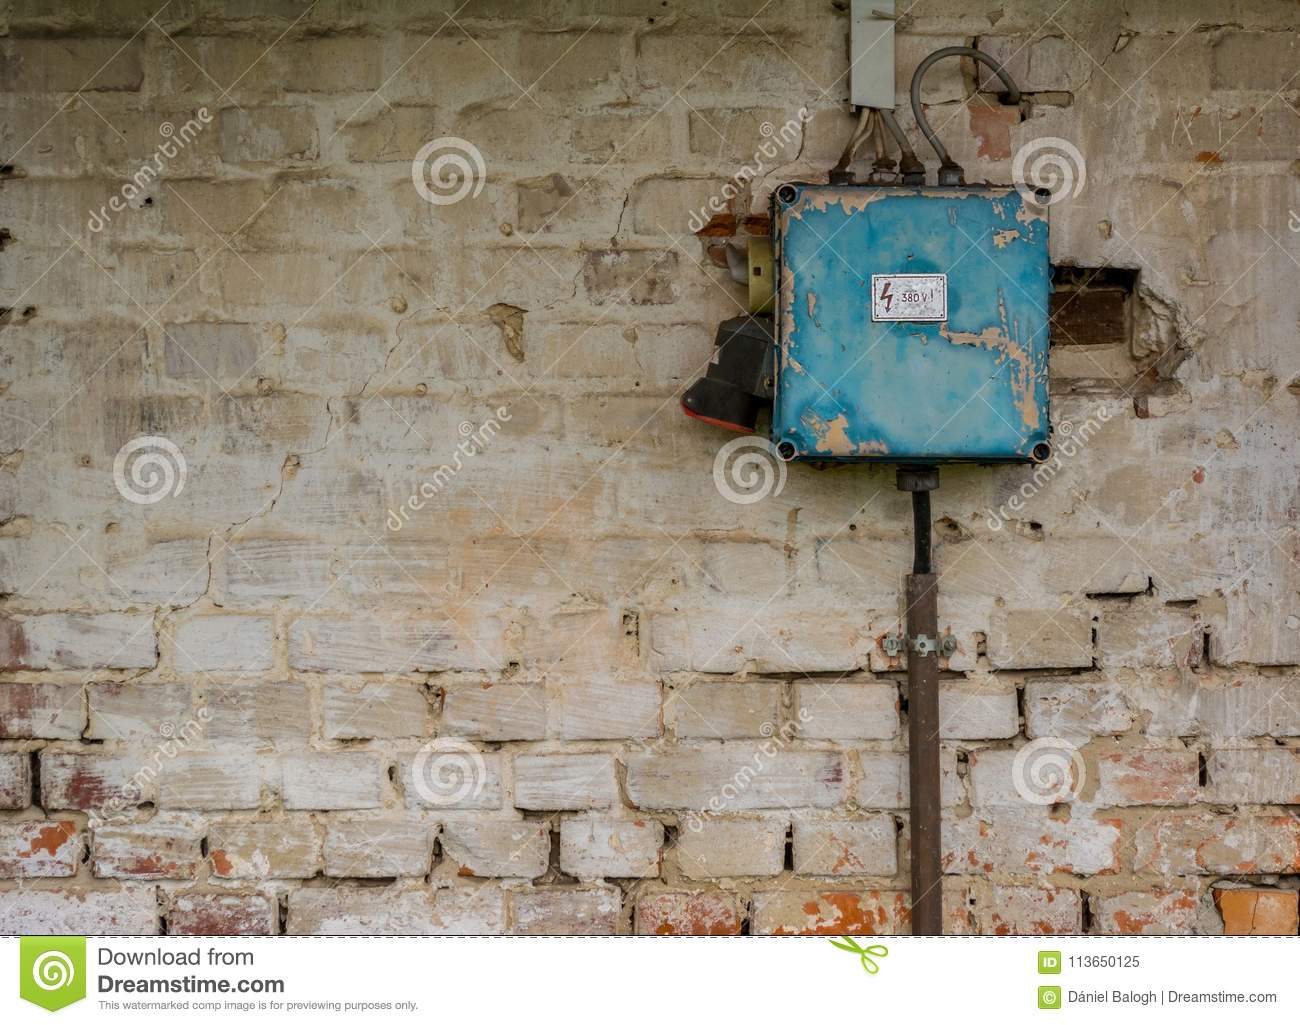 hight resolution of old bad rusty switch box on weathered wall stock image image of bad fuse breaker box bad fuse box